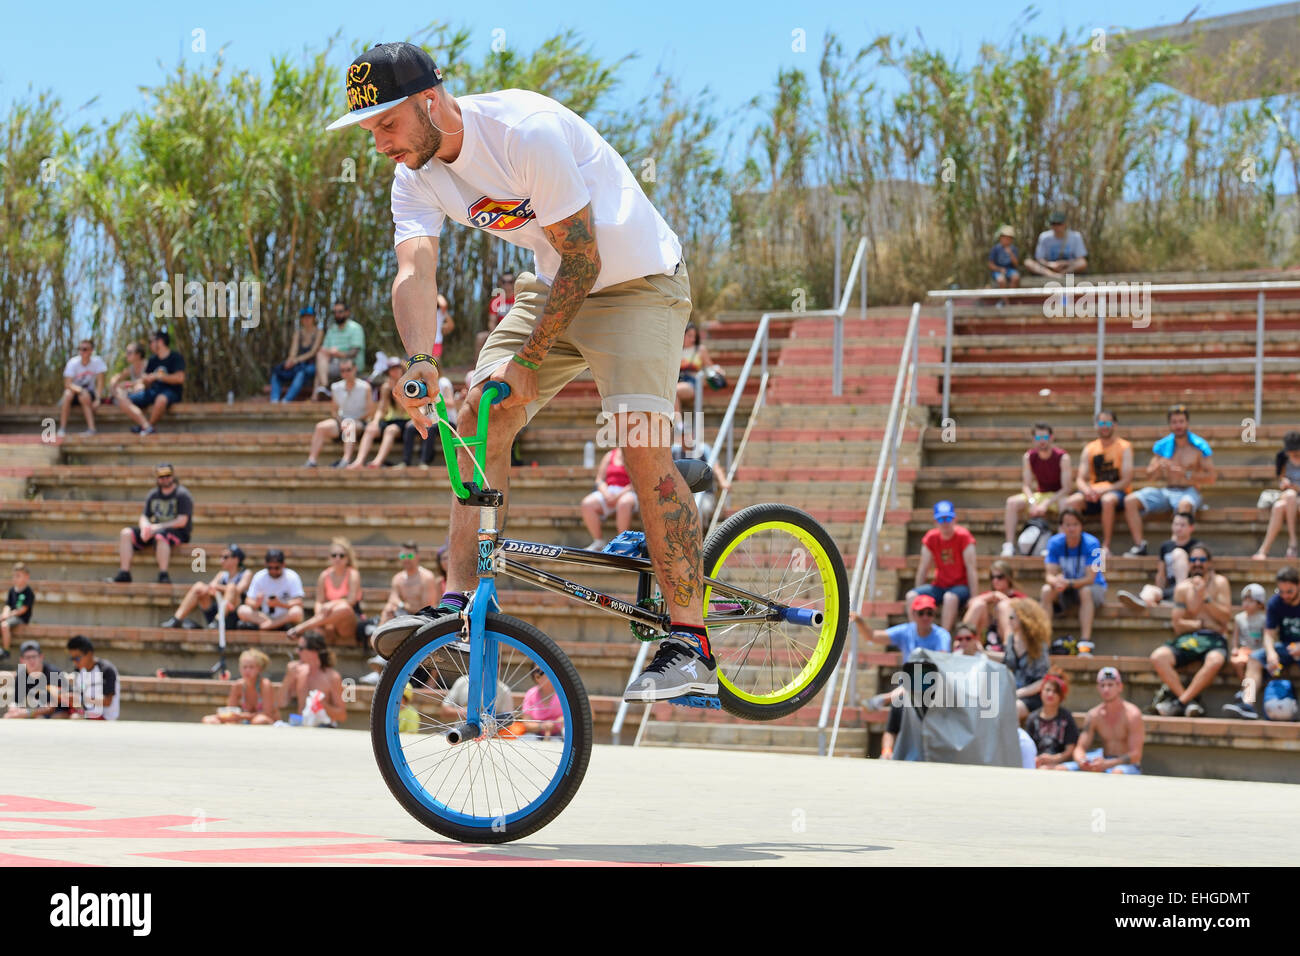 BARCELONA - JUNE 28: A professional rider at the BMX (Bicycle motocross) Flatland competition at LKXA Extreme Sports - Stock Image